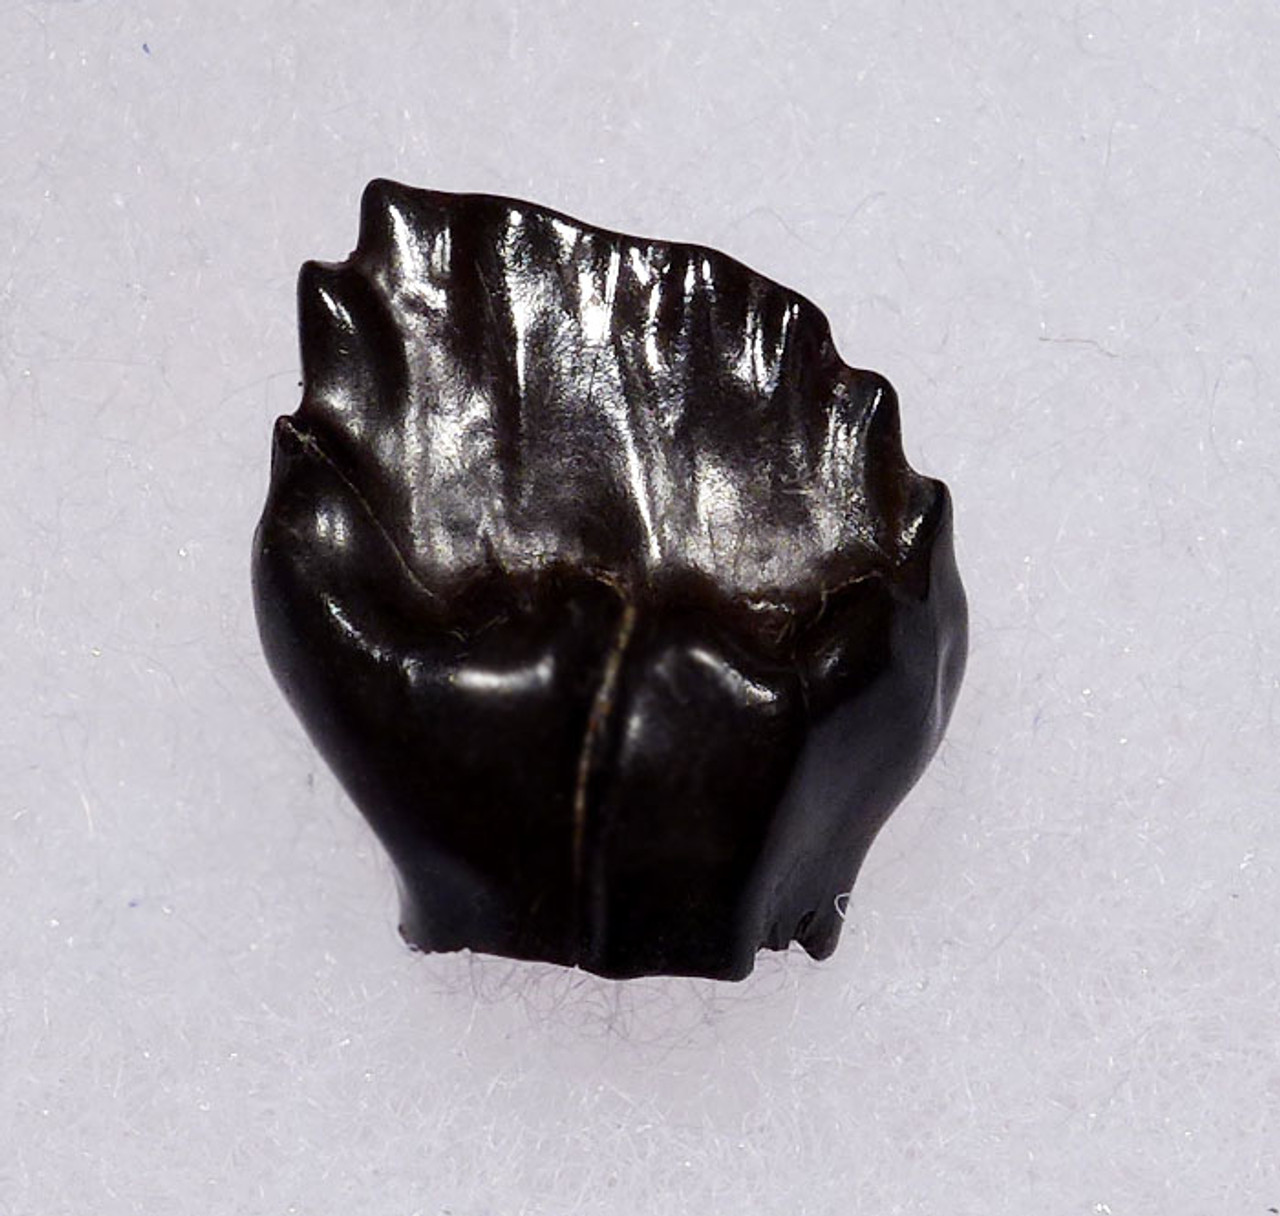 DT10-127 -  EXCEPTIONAL LARGE FOSSIL EDMONTONIA DINOSAUR TOOTH FROM AN ARMORED ANKYLOSAUR